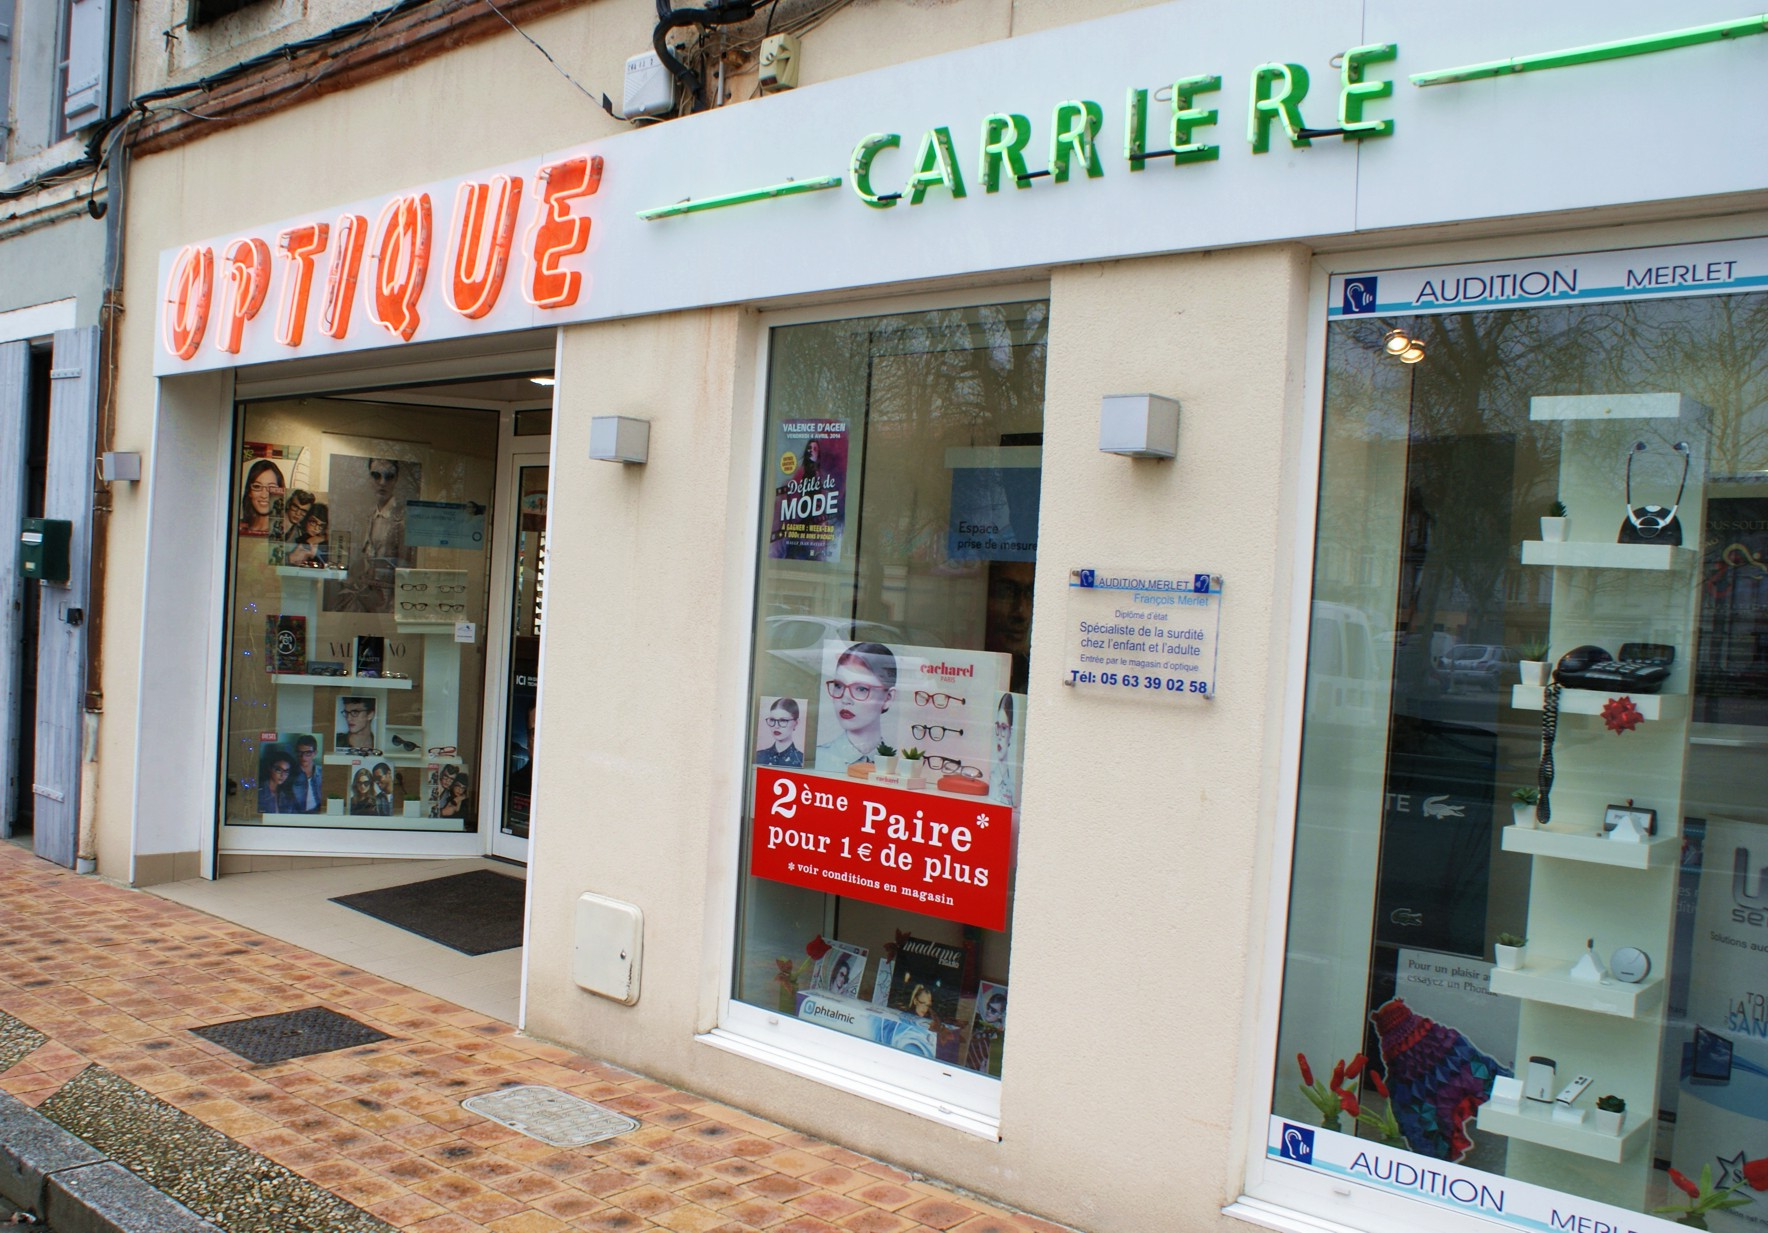 OPTIQUE CARRIERE